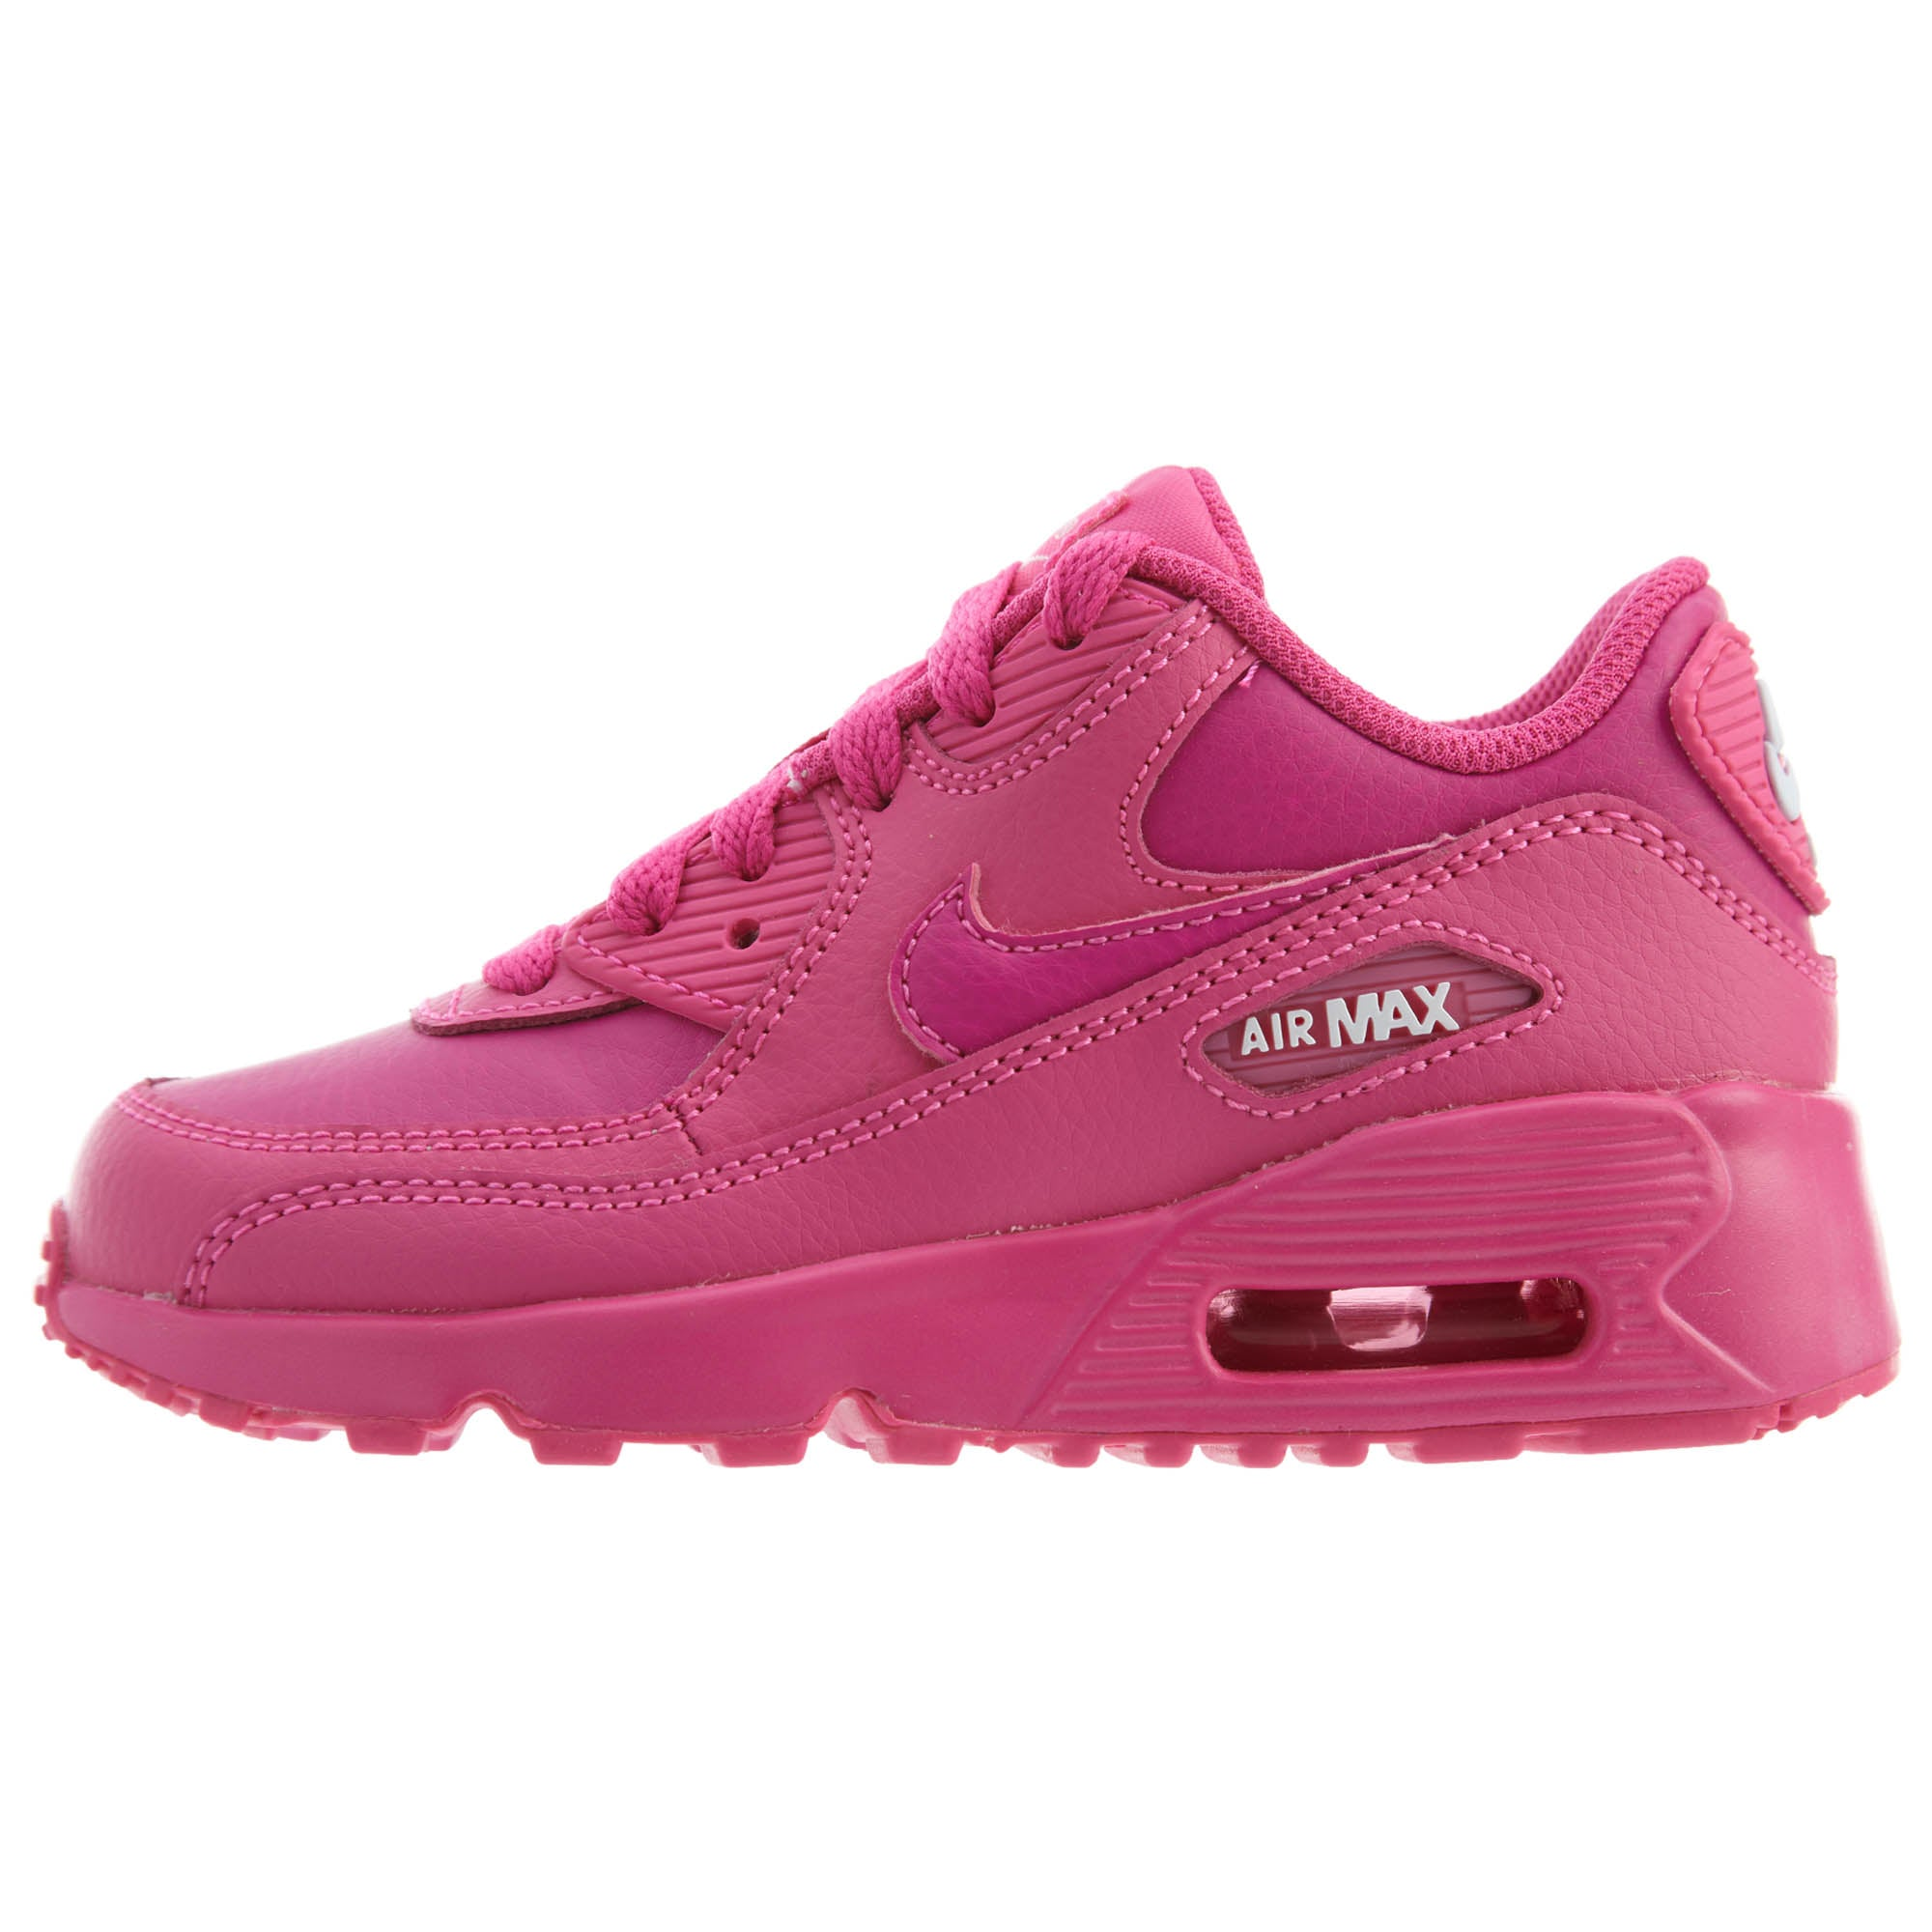 3434a38df90 Nike Air Max 90 Ltr Little Kids Style   833377-603 – Sneaker Experts